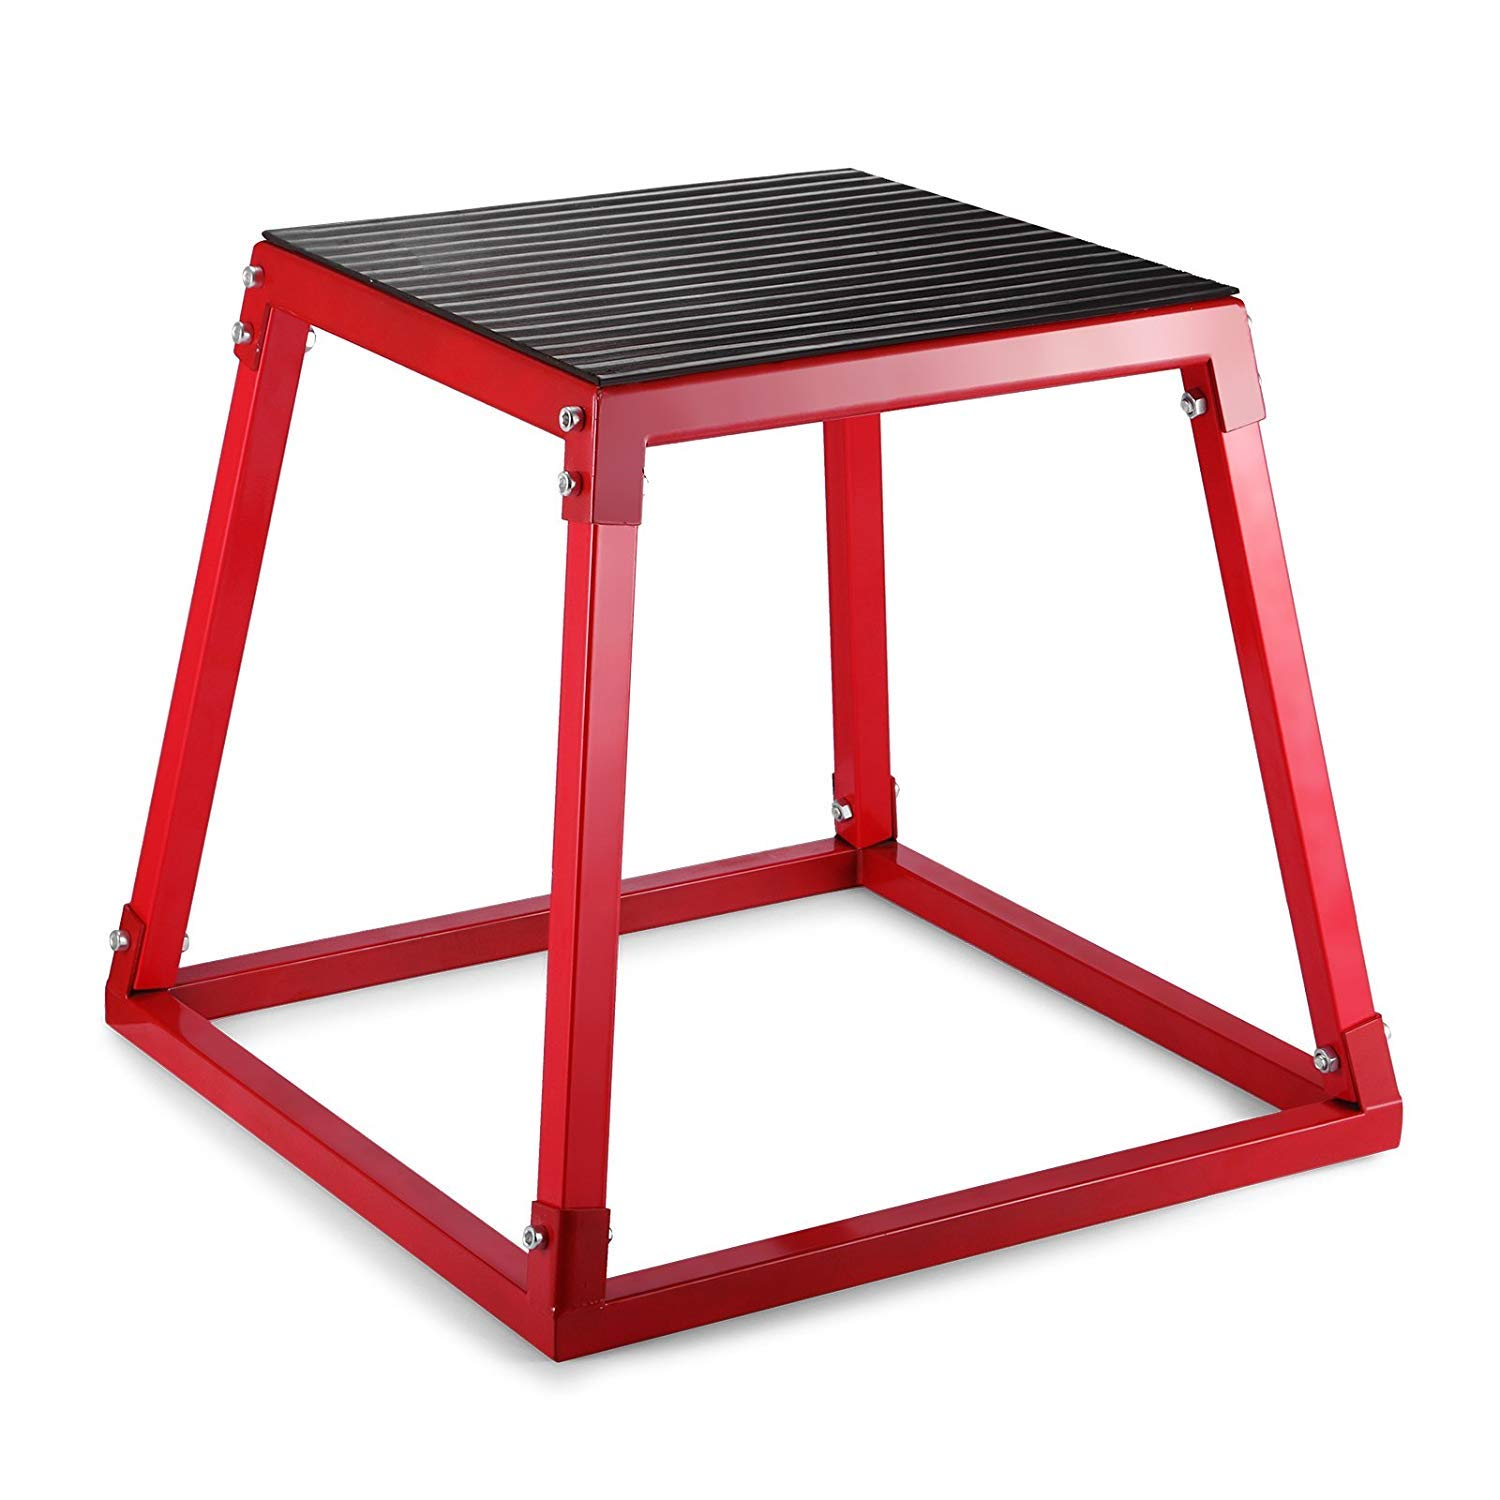 popsport Plyometric Platform Box 12/18/24/30 Inch Fitness Exercise Jump Box Step Plyometric Box Jump for Exercise Fit Training (red, 24inch)